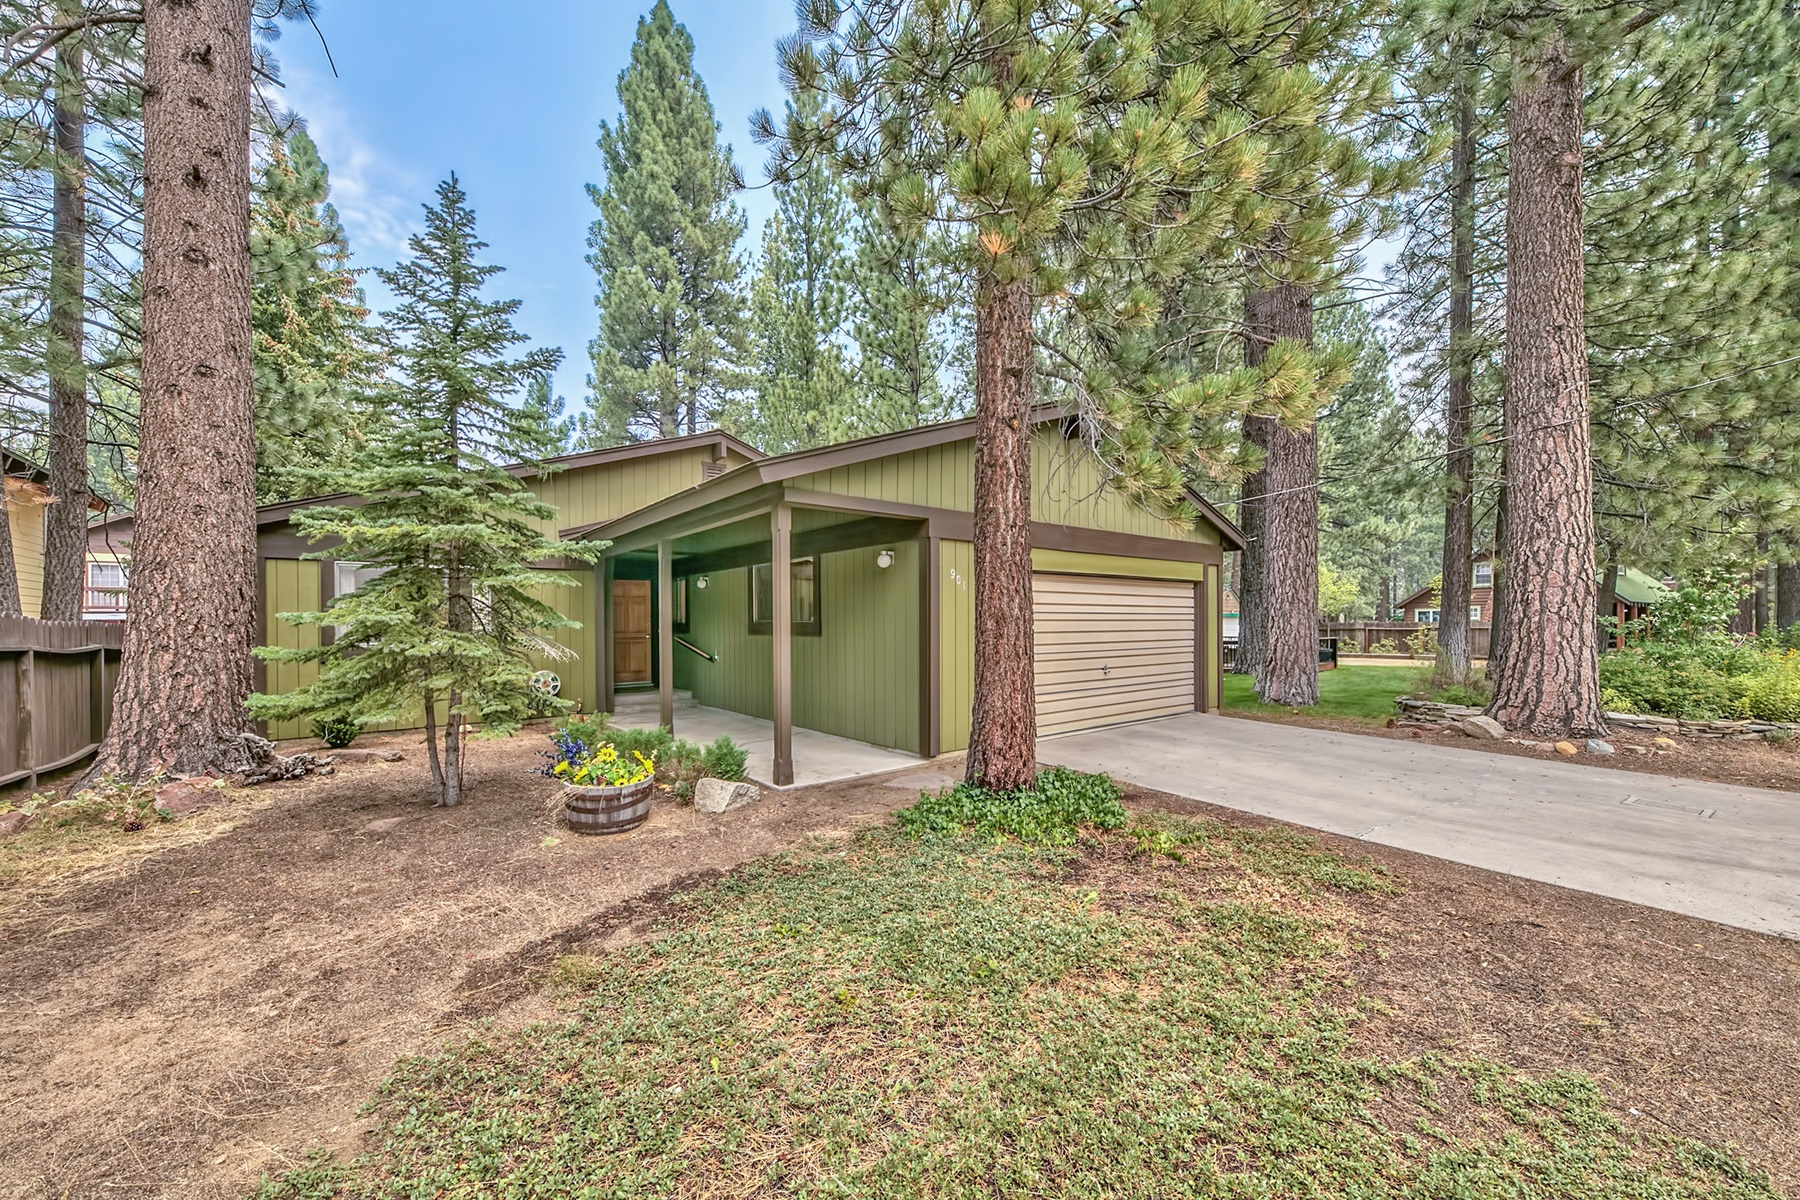 Single Family Home for Active at 901 Los Angeles Avenue, South Lake Tahoe, CA, 96150 901 Los Angeles Avenue South Lake Tahoe, California 96150 United States